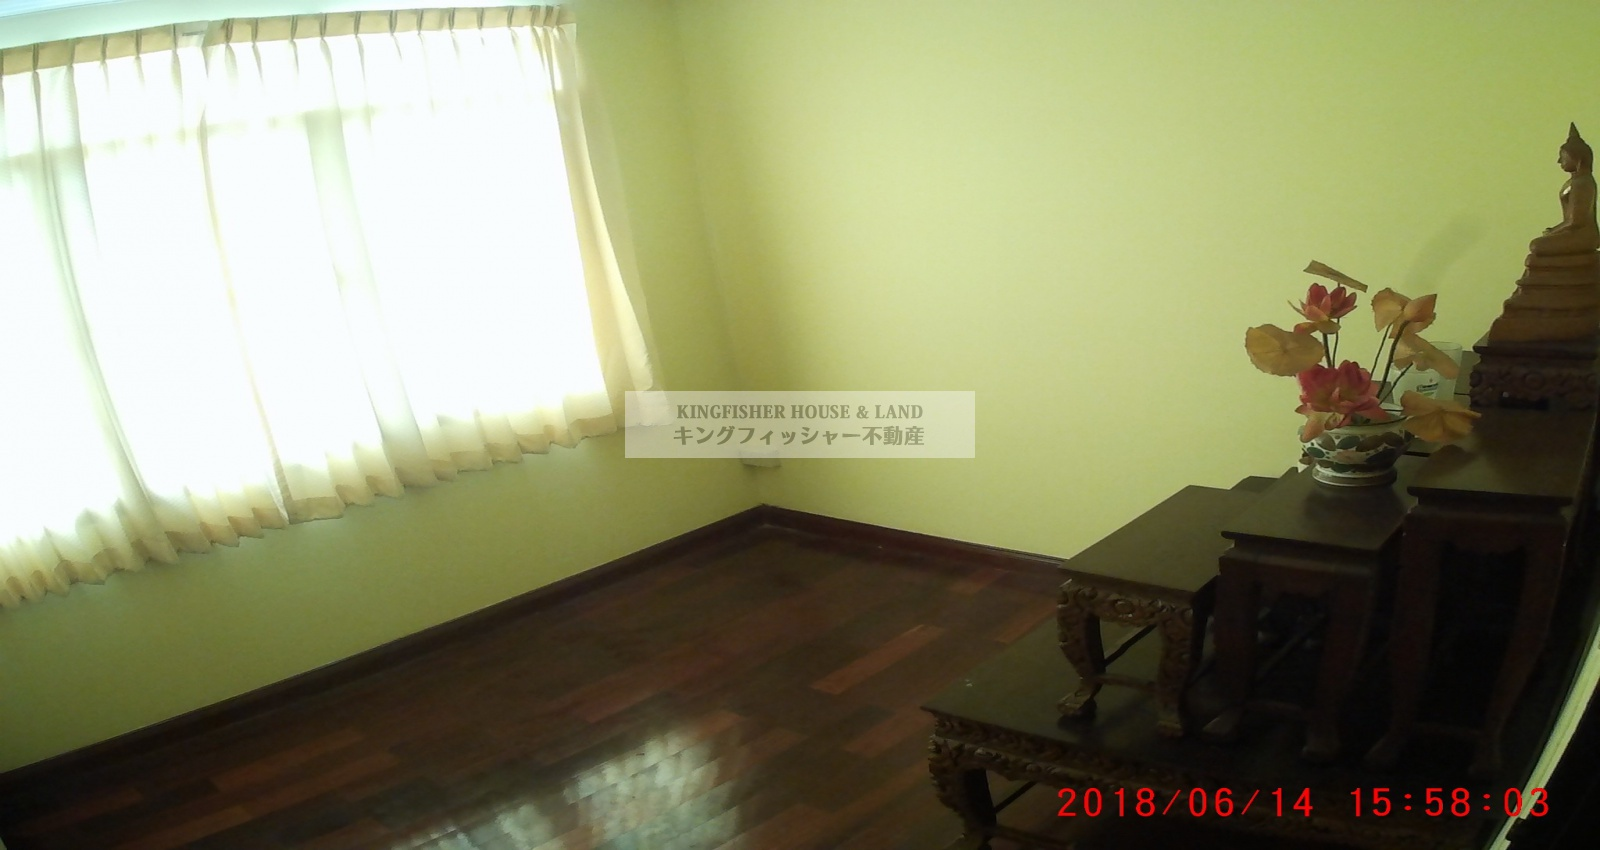 5 Bedrooms, House, For Rent, 2 Bathrooms, Listing ID 1283, Sriracha, Chonburi, Thailand, 20110,